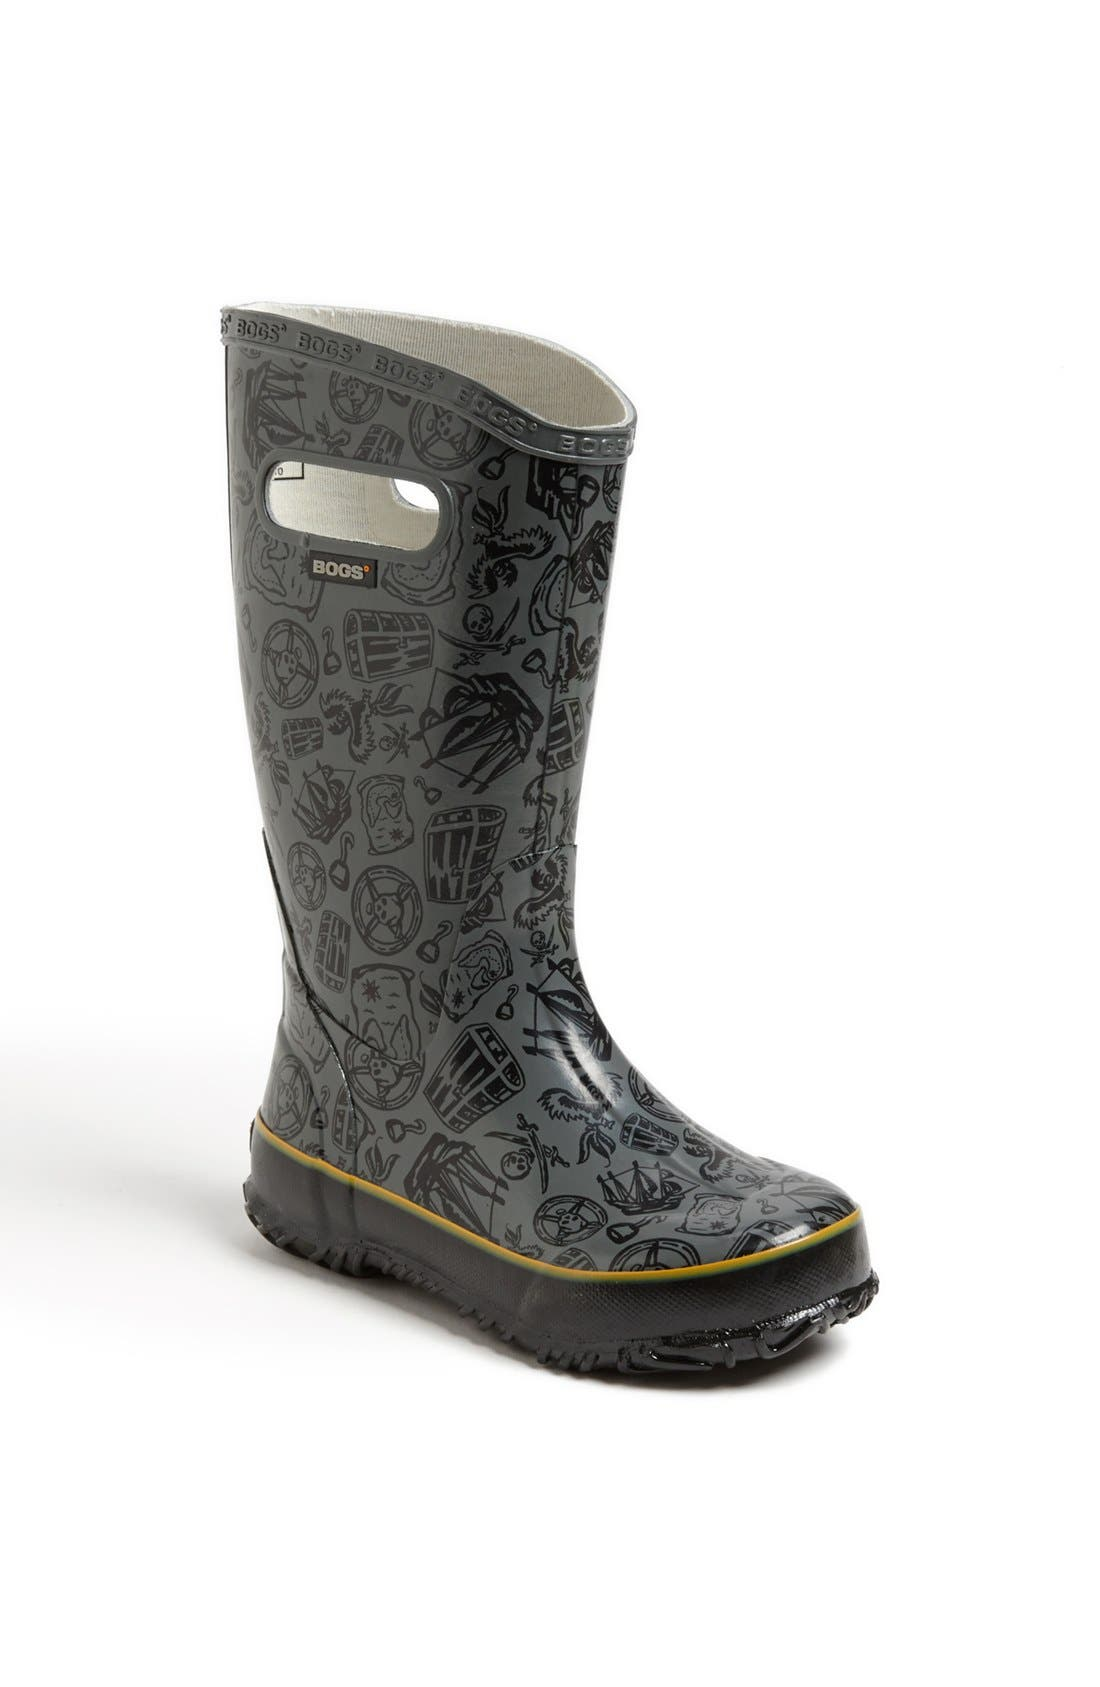 Alternate Image 1 Selected - Bogs 'Pirate' Rain Boot (Walker, Toddler, Little Kid & Big Kid)